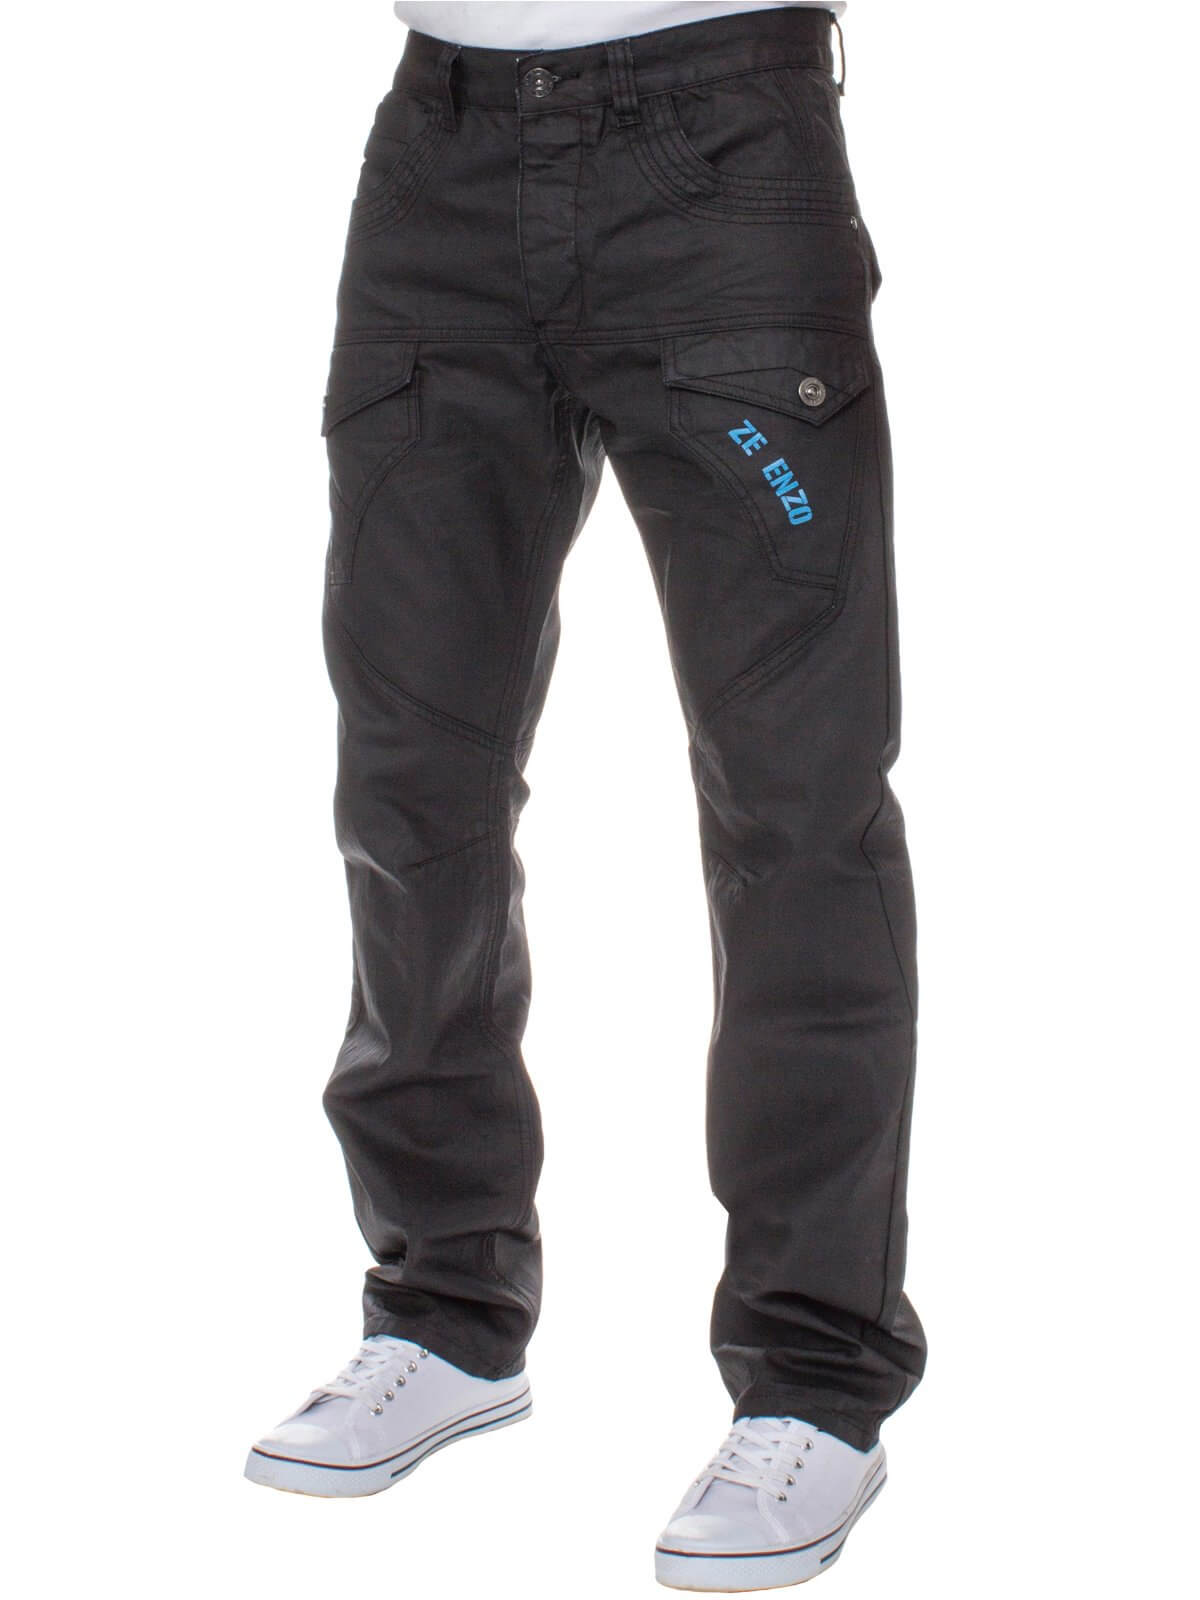 Mens Regular Fit Black Coated Denim Jeans | Enzo Designer Menswear